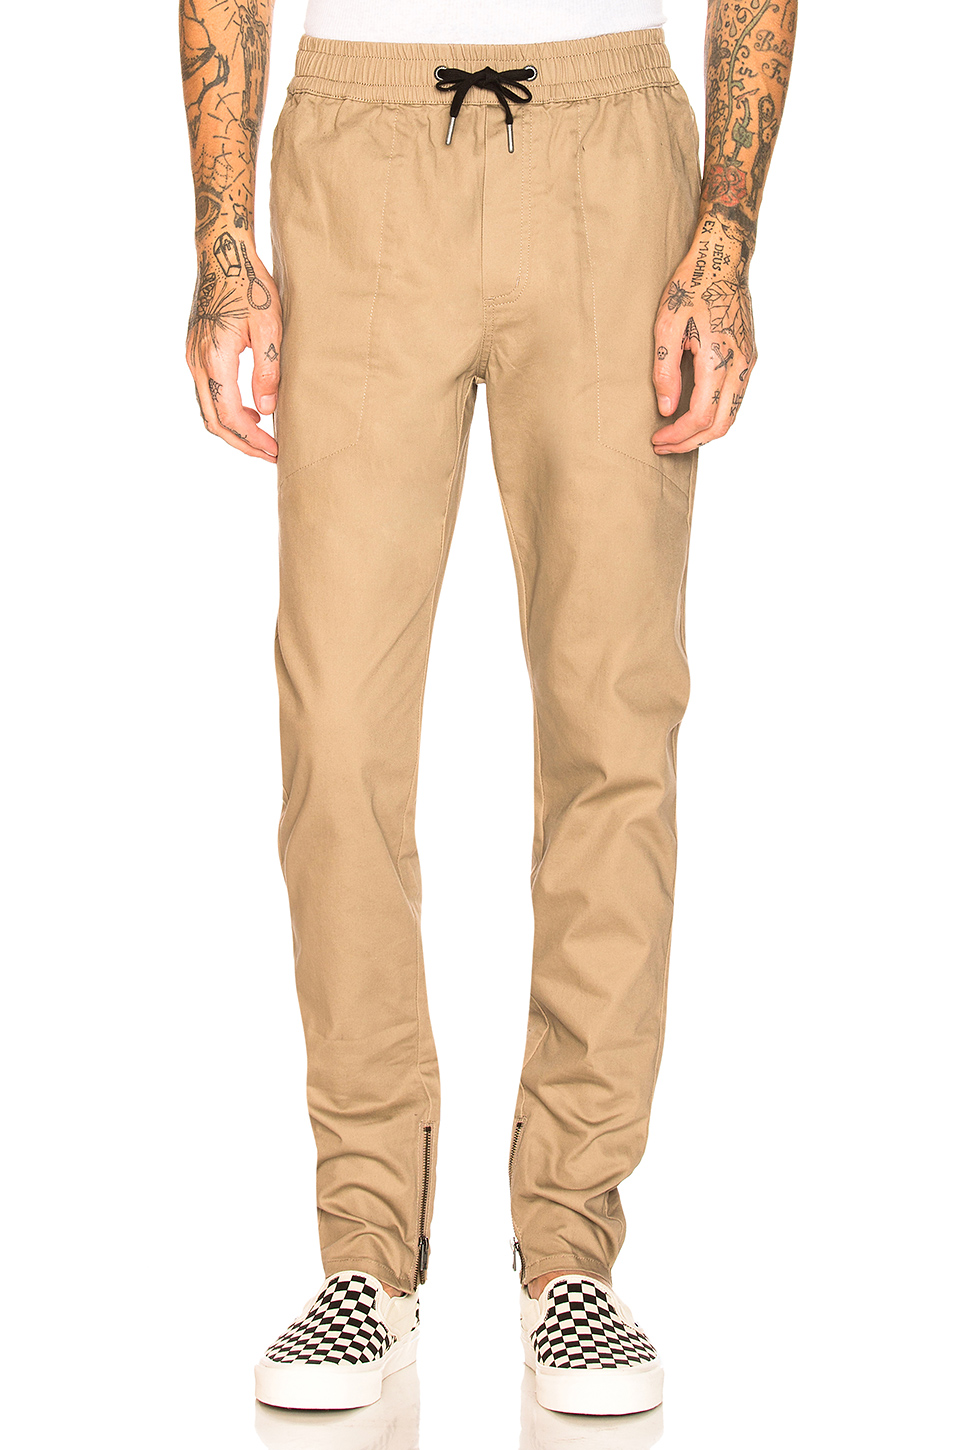 Zanerobe Unblockshot Chino in Sand